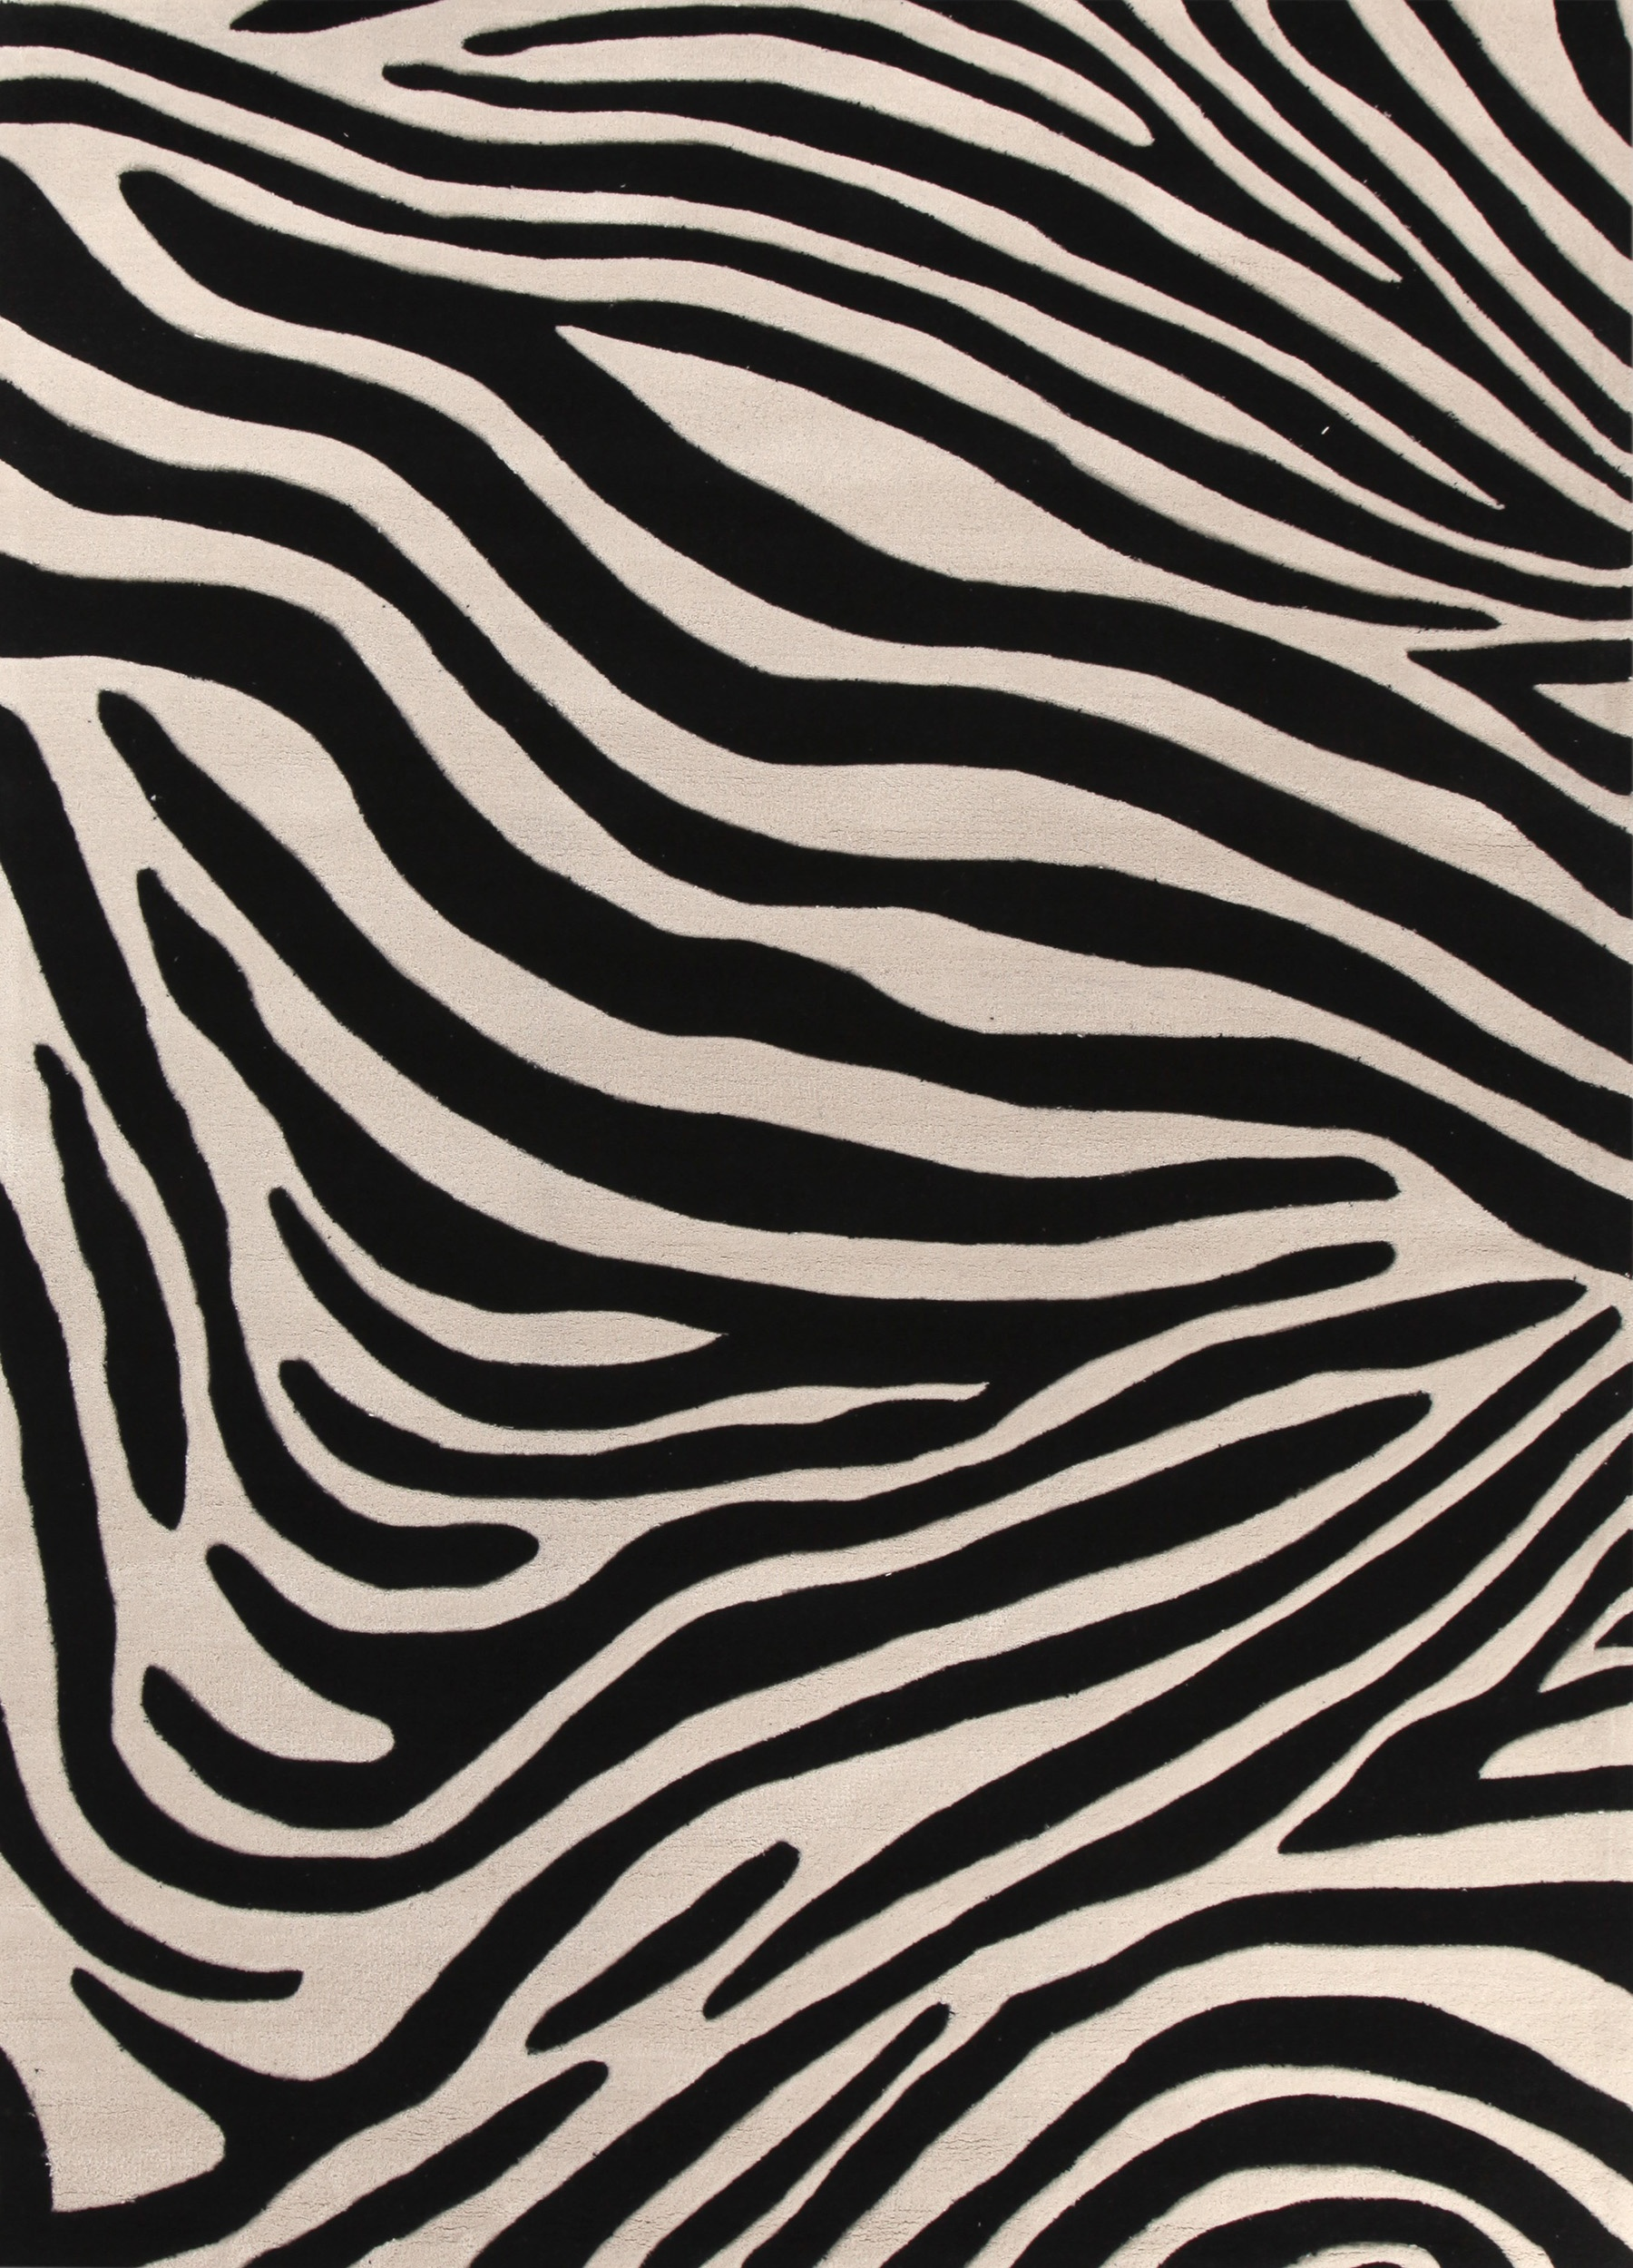 Gorgeous zebra rug for floorings and rugs ideas with zebra skin rug